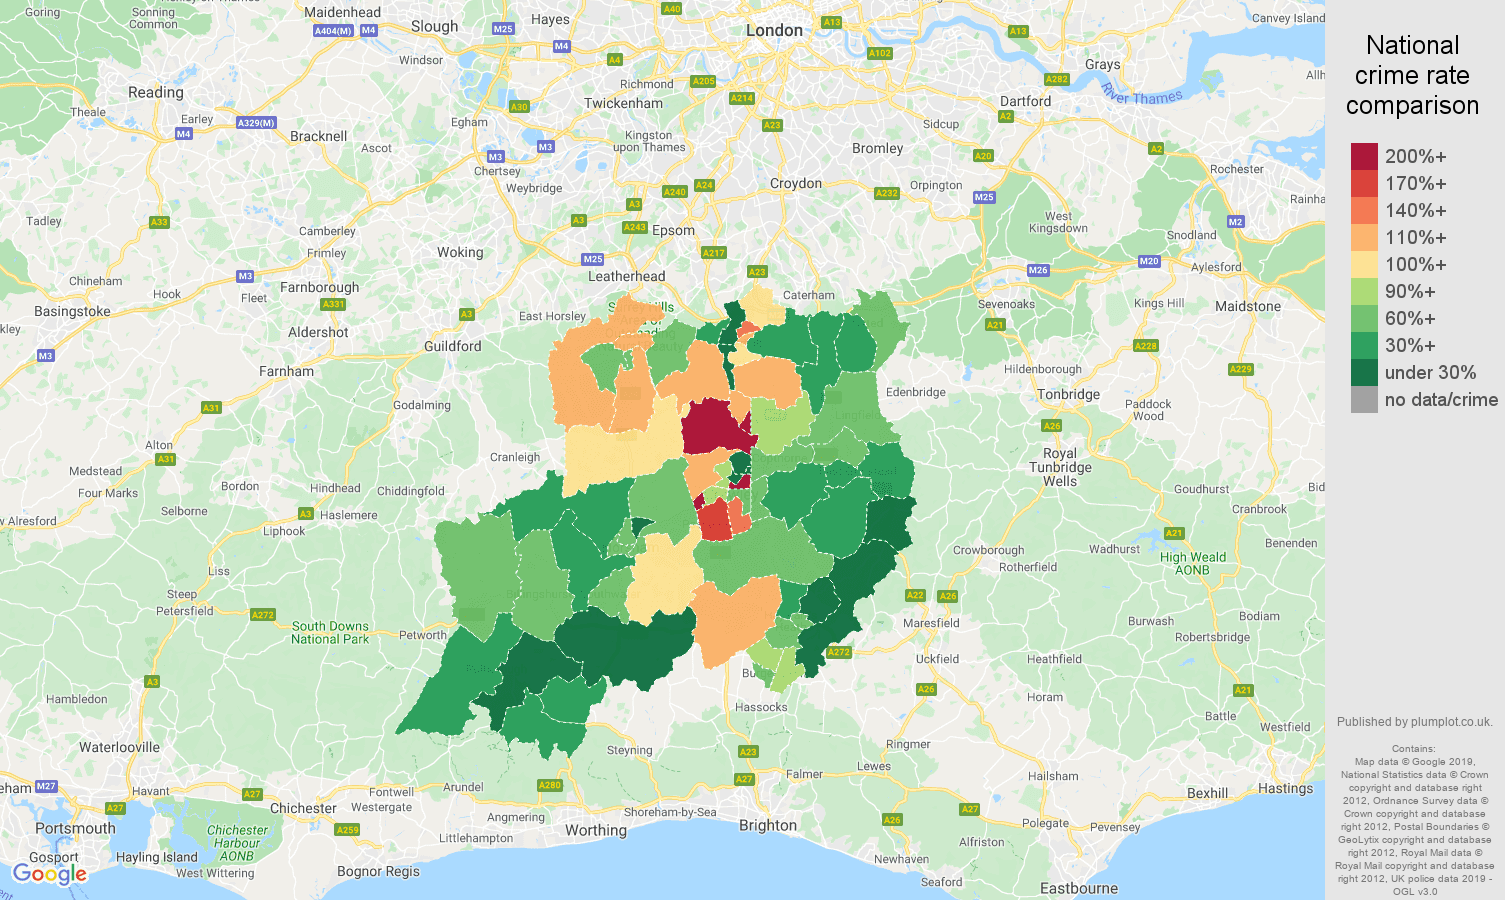 Redhill other crime rate comparison map